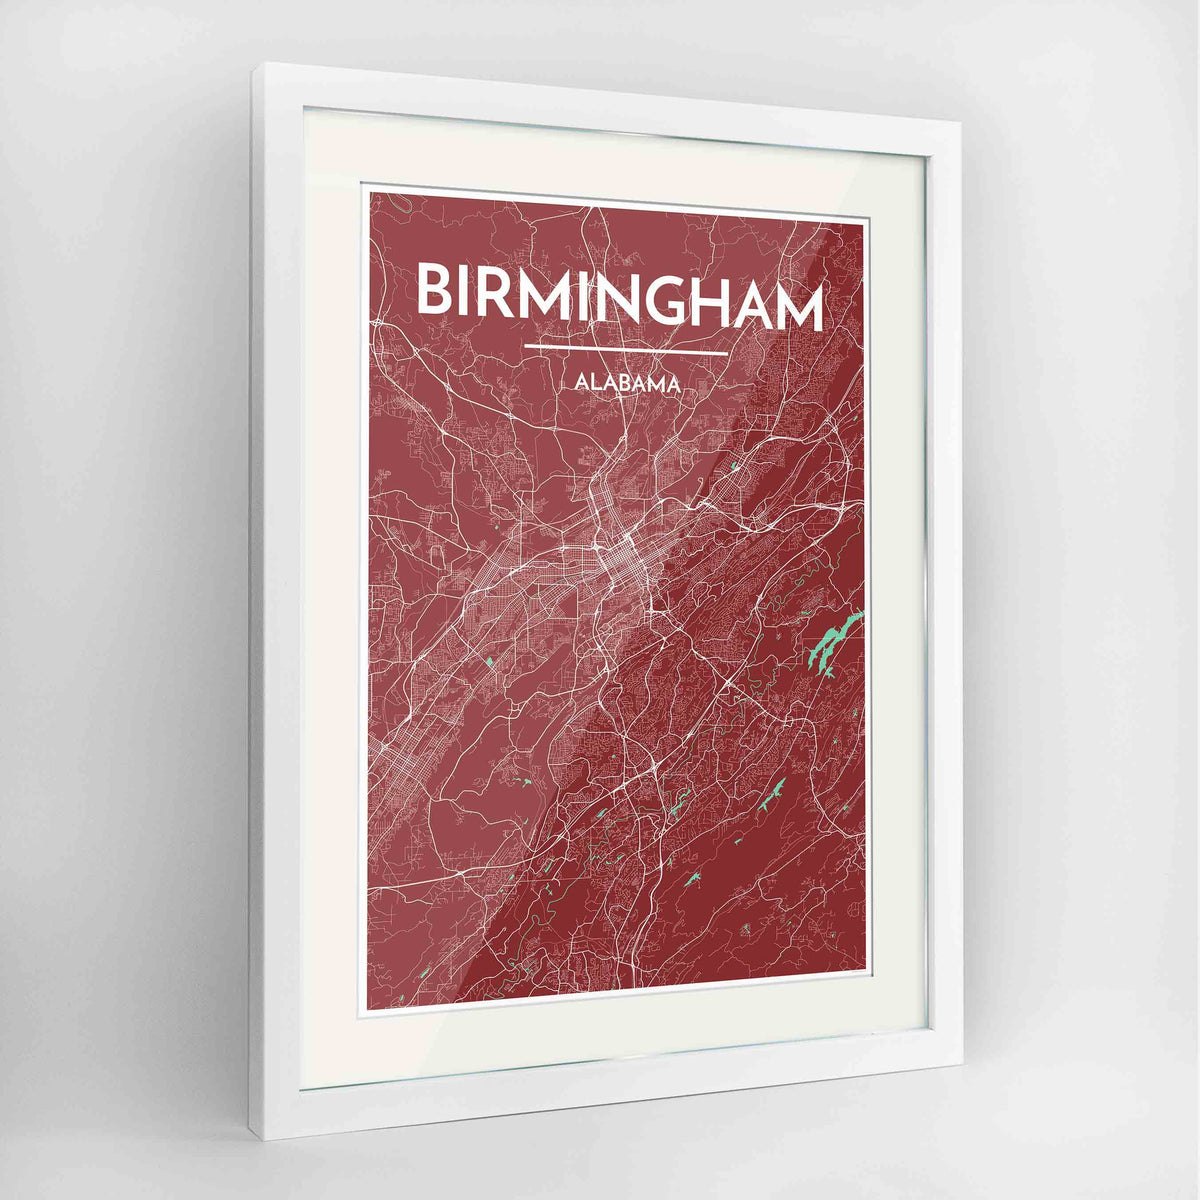 "Framed Birmingham - Alabama Map Art Print 24x36"" Contemporary White frame Point Two Design Group"